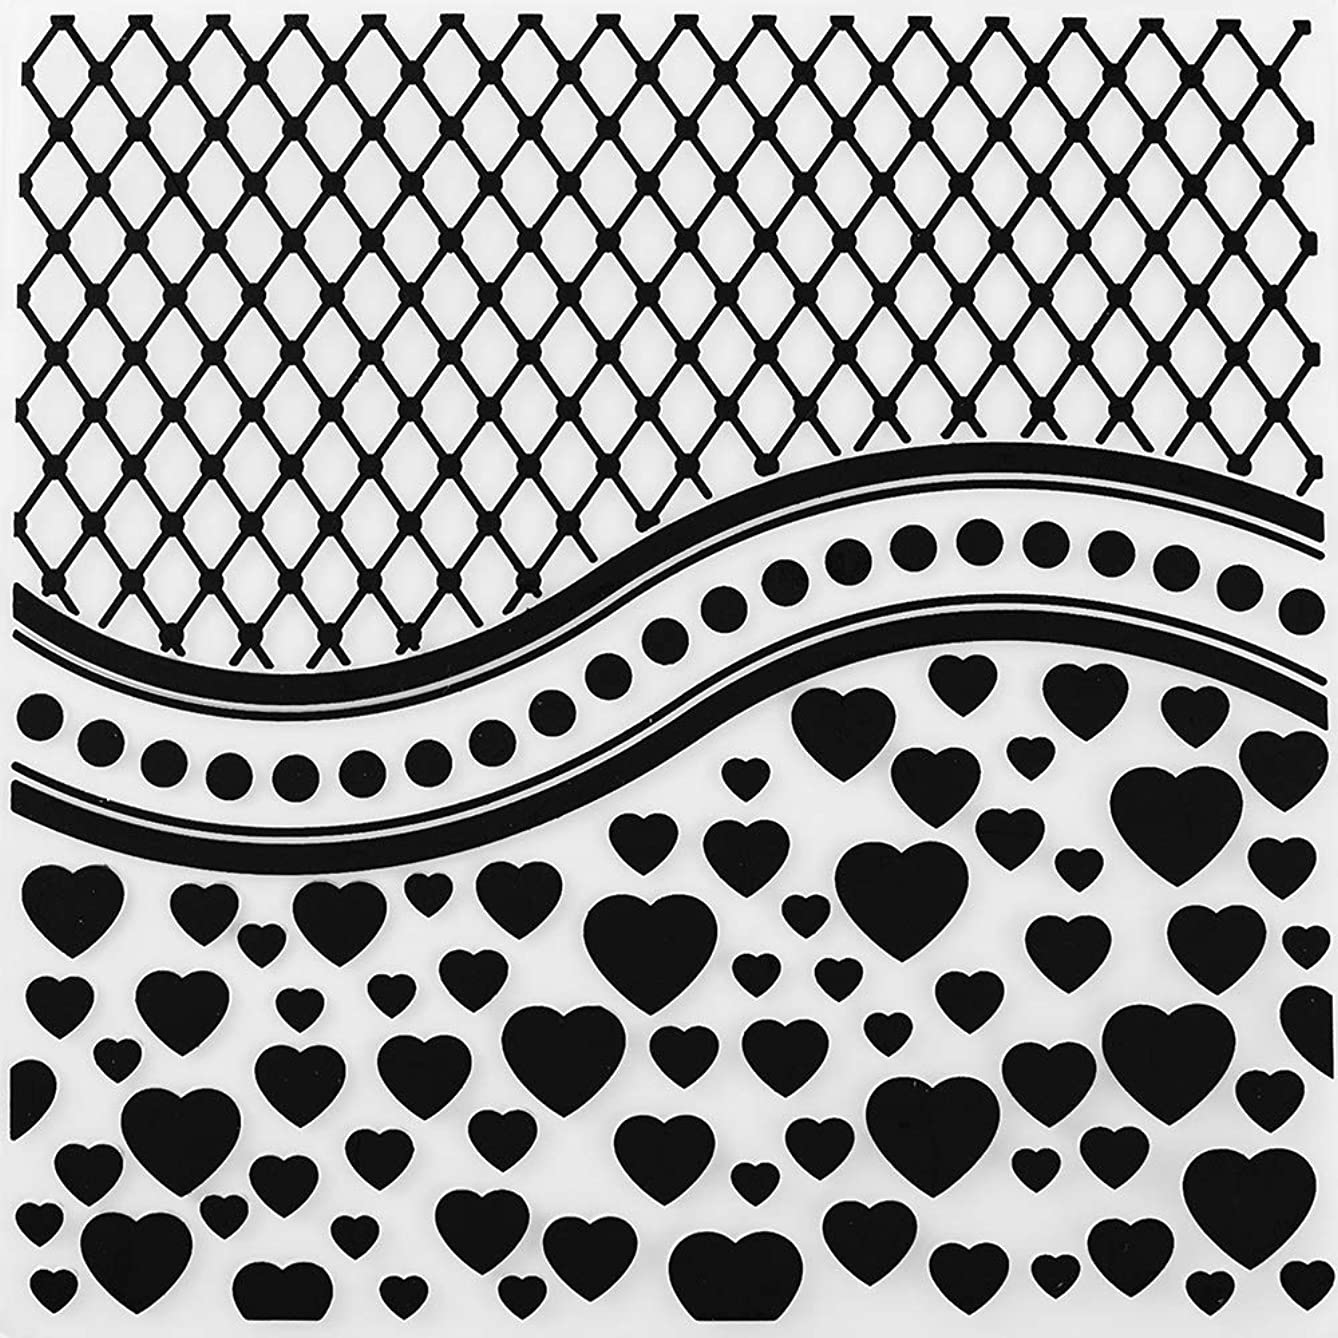 MaGuo Love Network Plastic Embossing Folder Template for Card Making Scrapbooking DIY Crafts